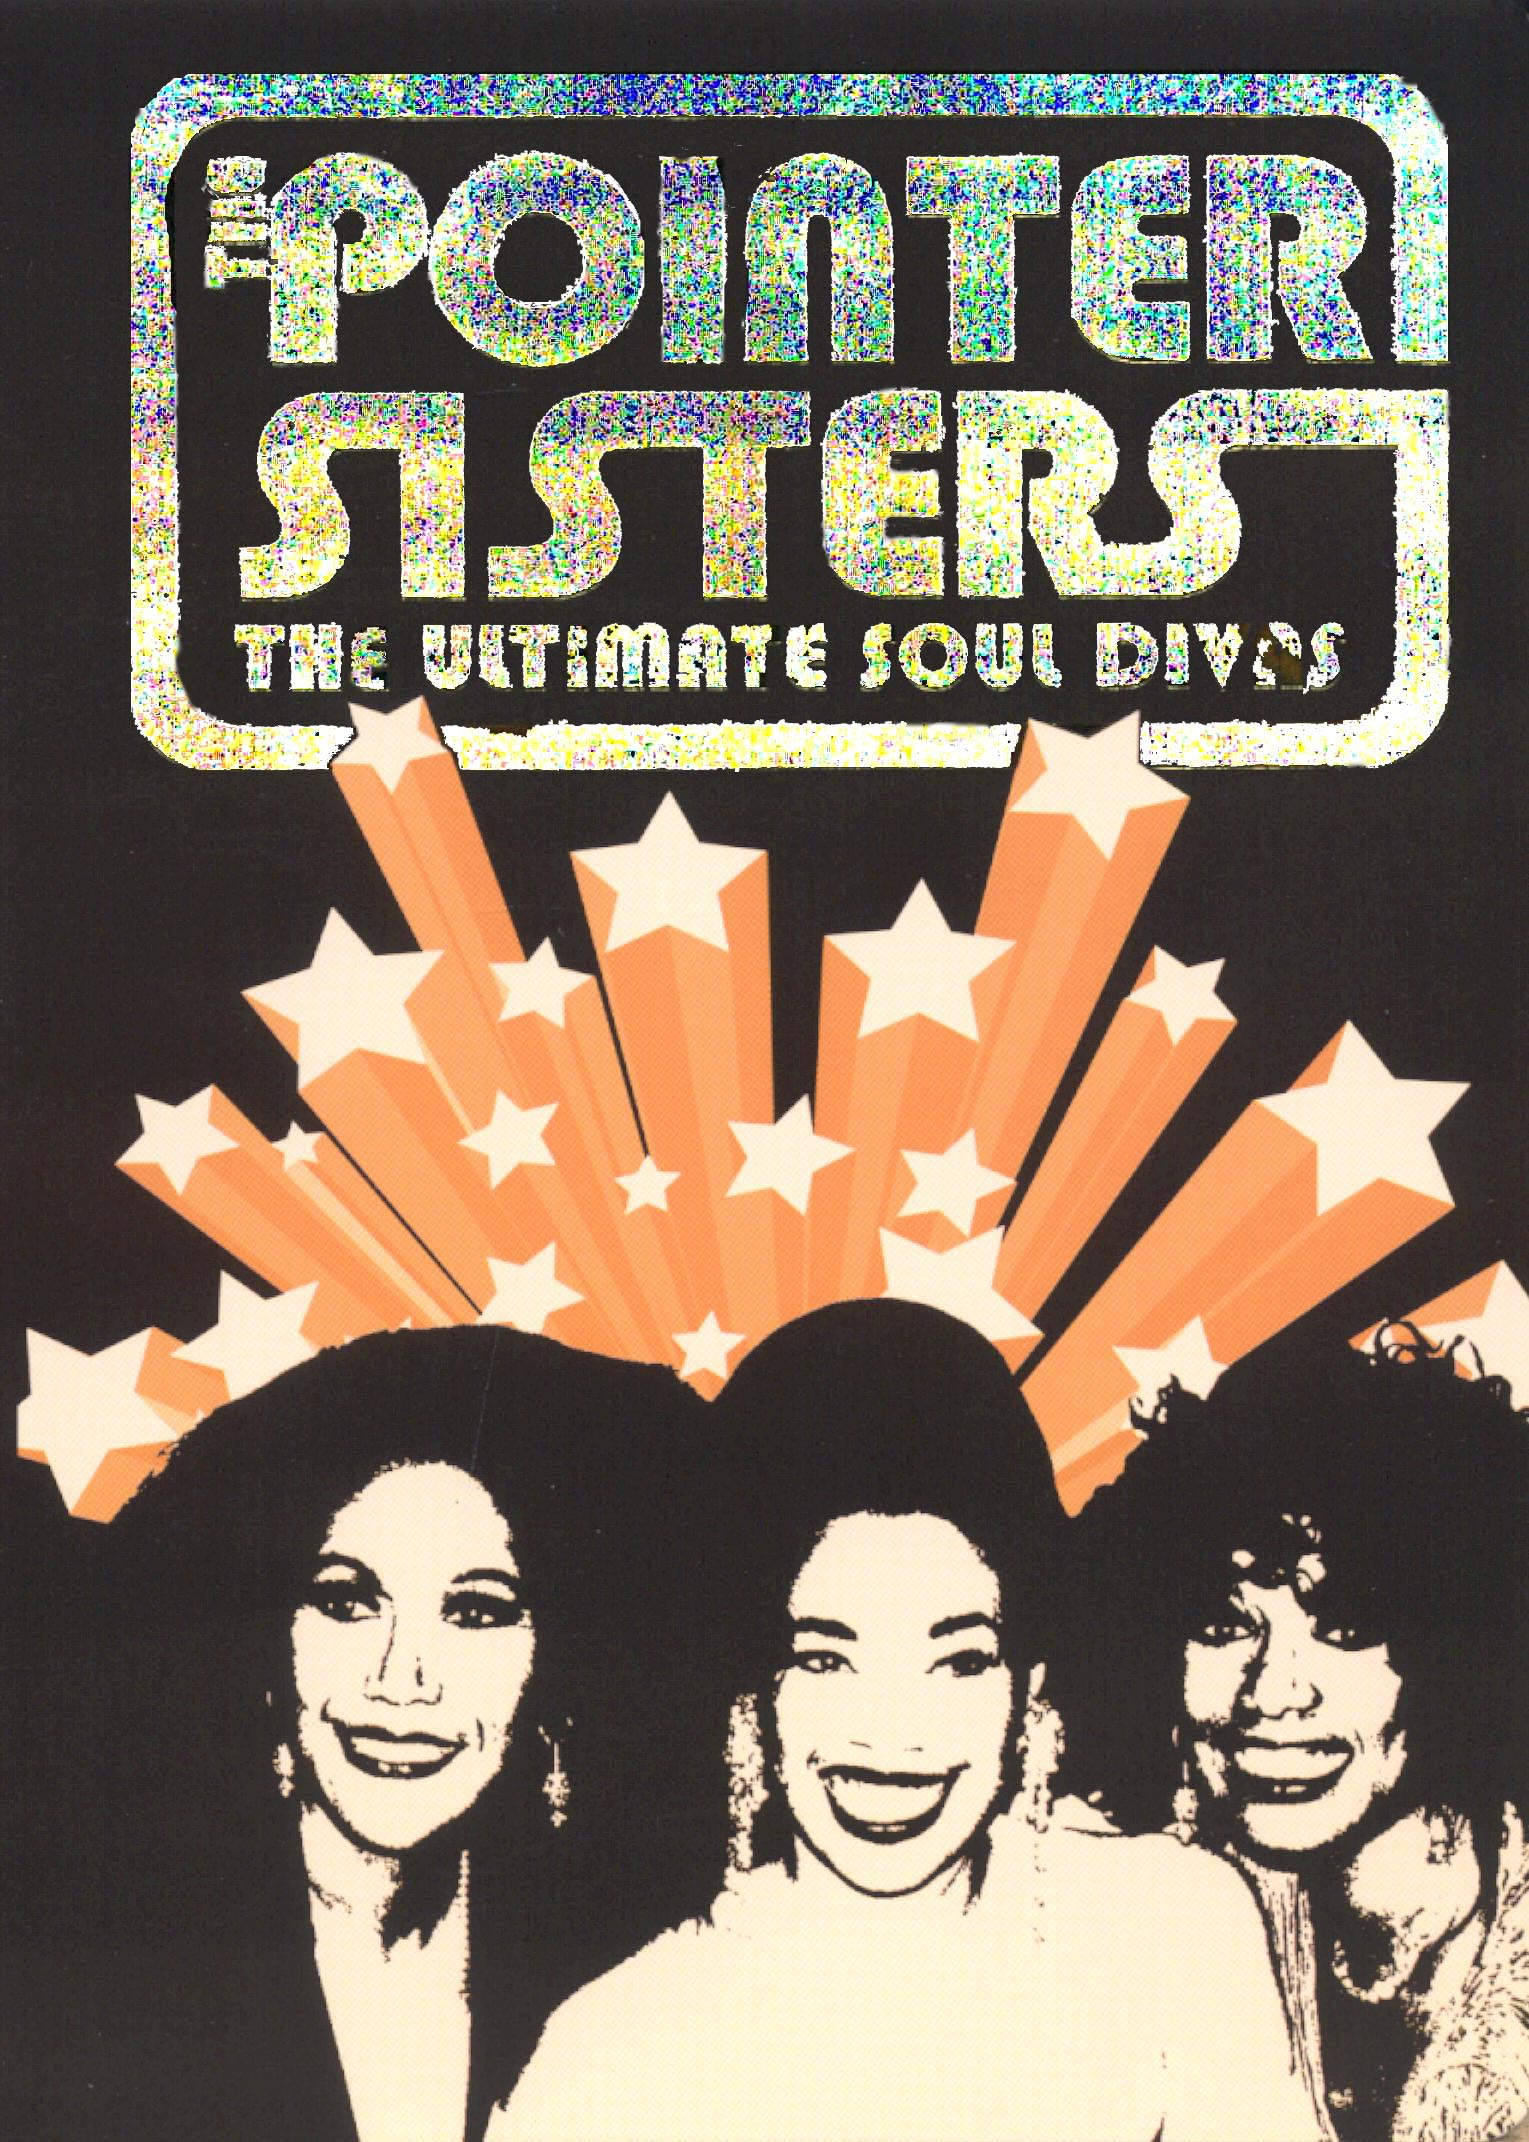 The Pointer Sisters: The Ultimate Soul Divas